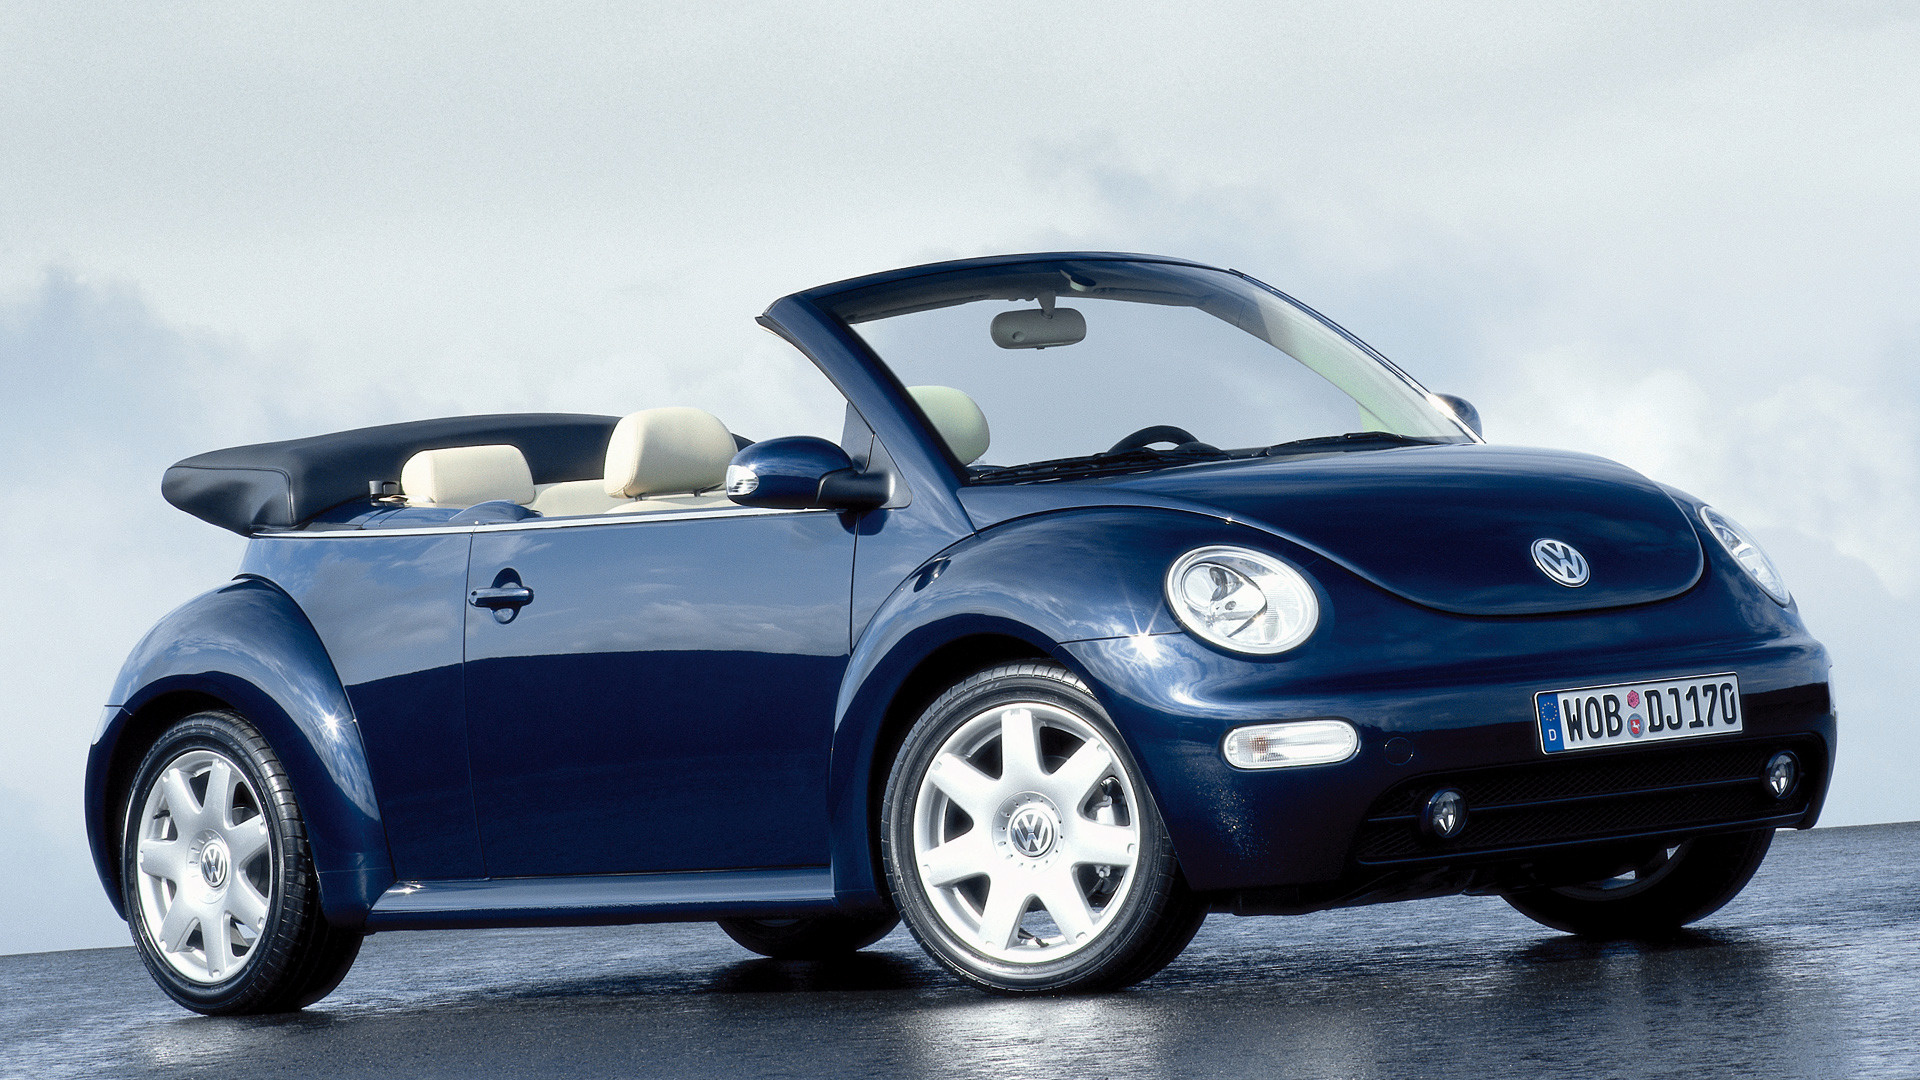 volkswagen new beetle cabriolet 2003 wallpapers and hd. Black Bedroom Furniture Sets. Home Design Ideas